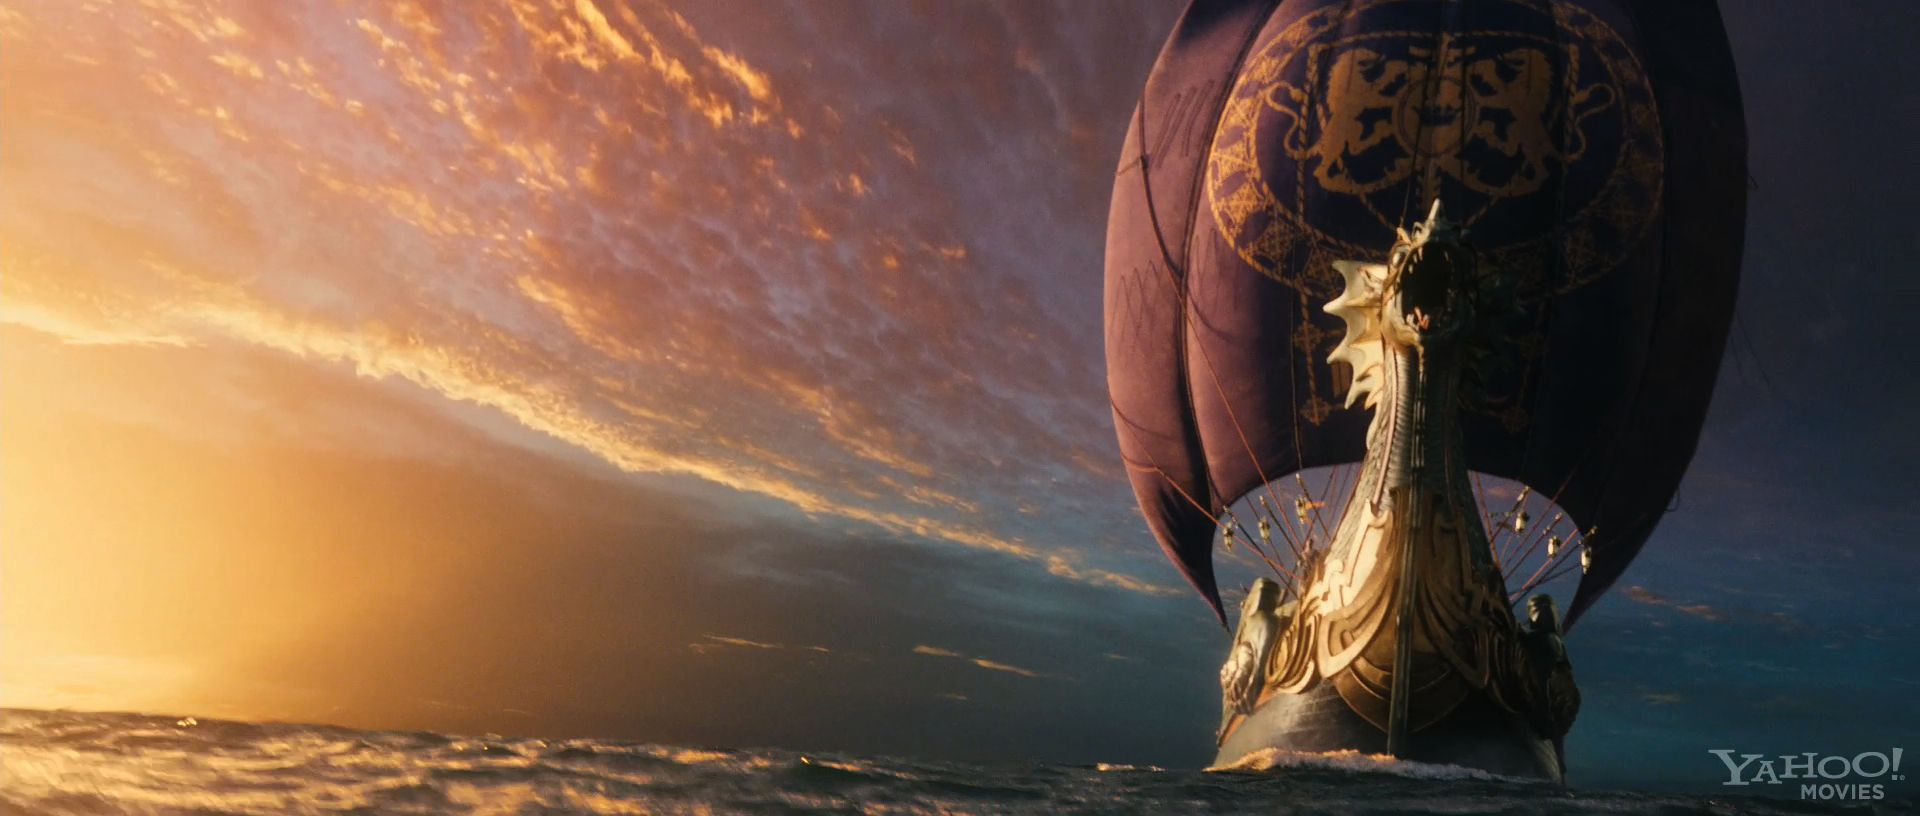 The Voyage Of The Dawn Treader A Review Of Sorts Chronicles